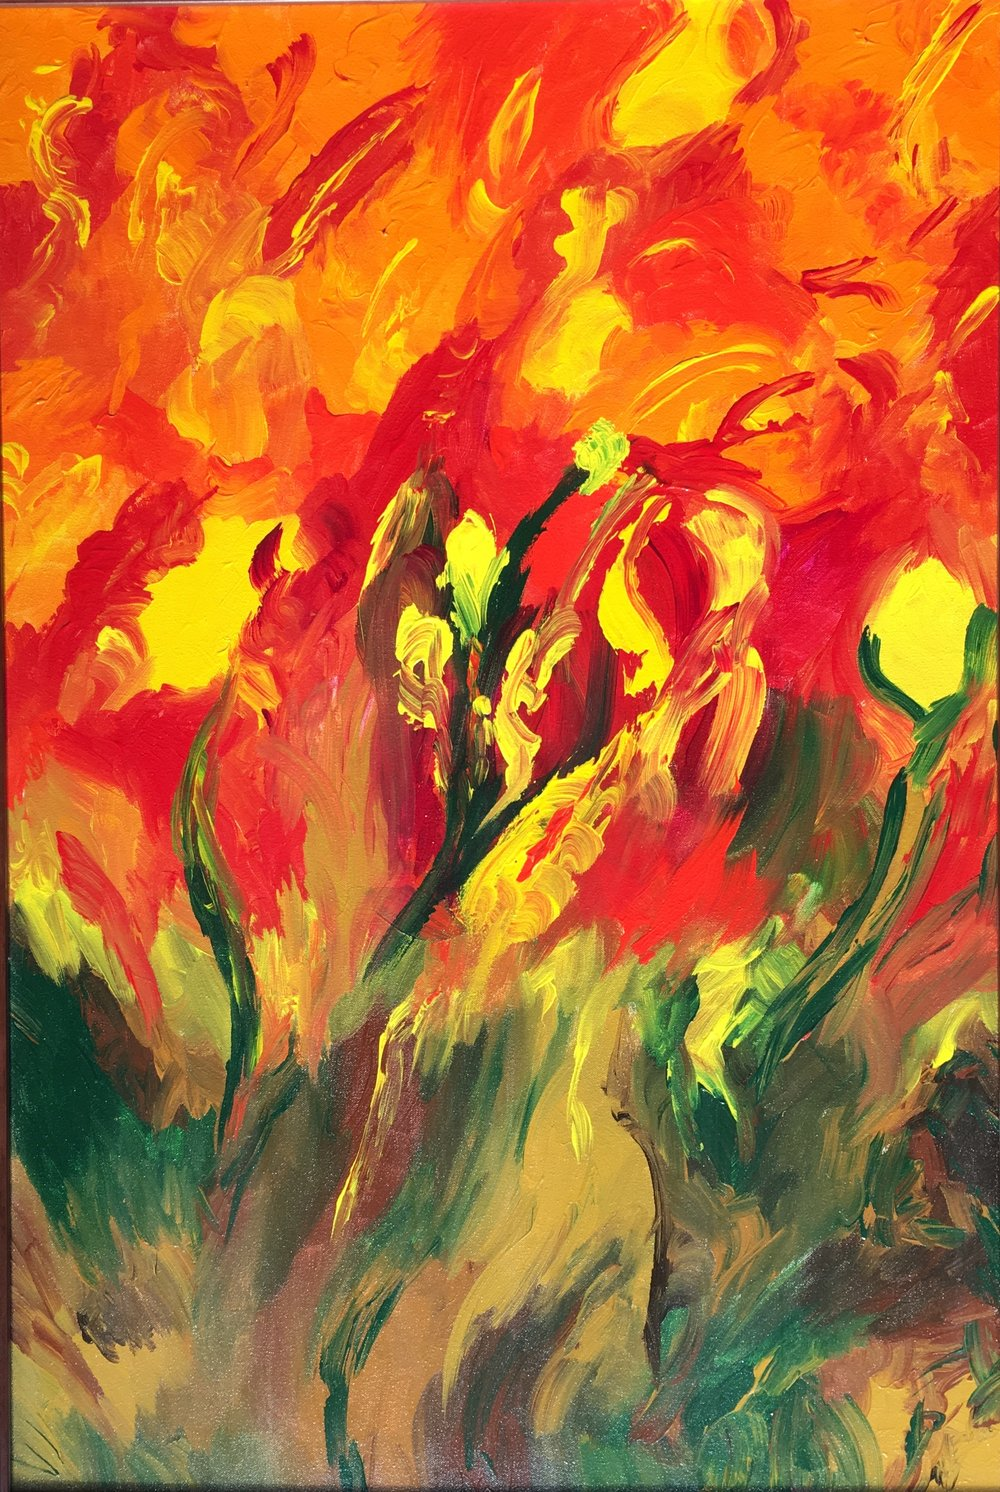 Flames and Flowers.jpg